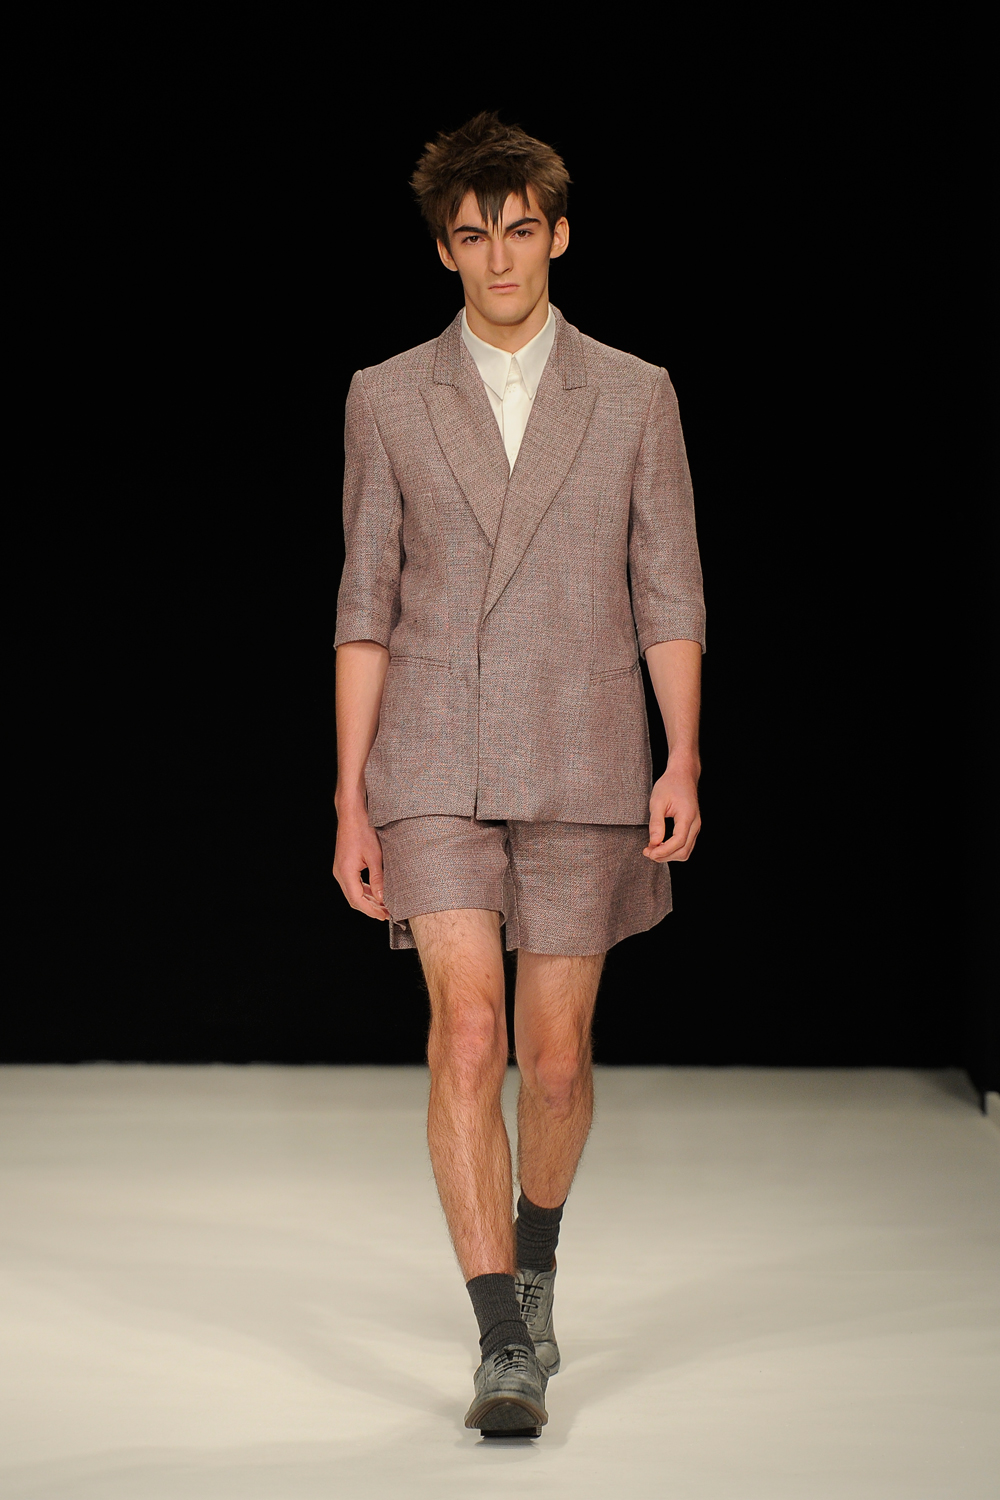 Alan-Taylor-SS14-HERO-look-1